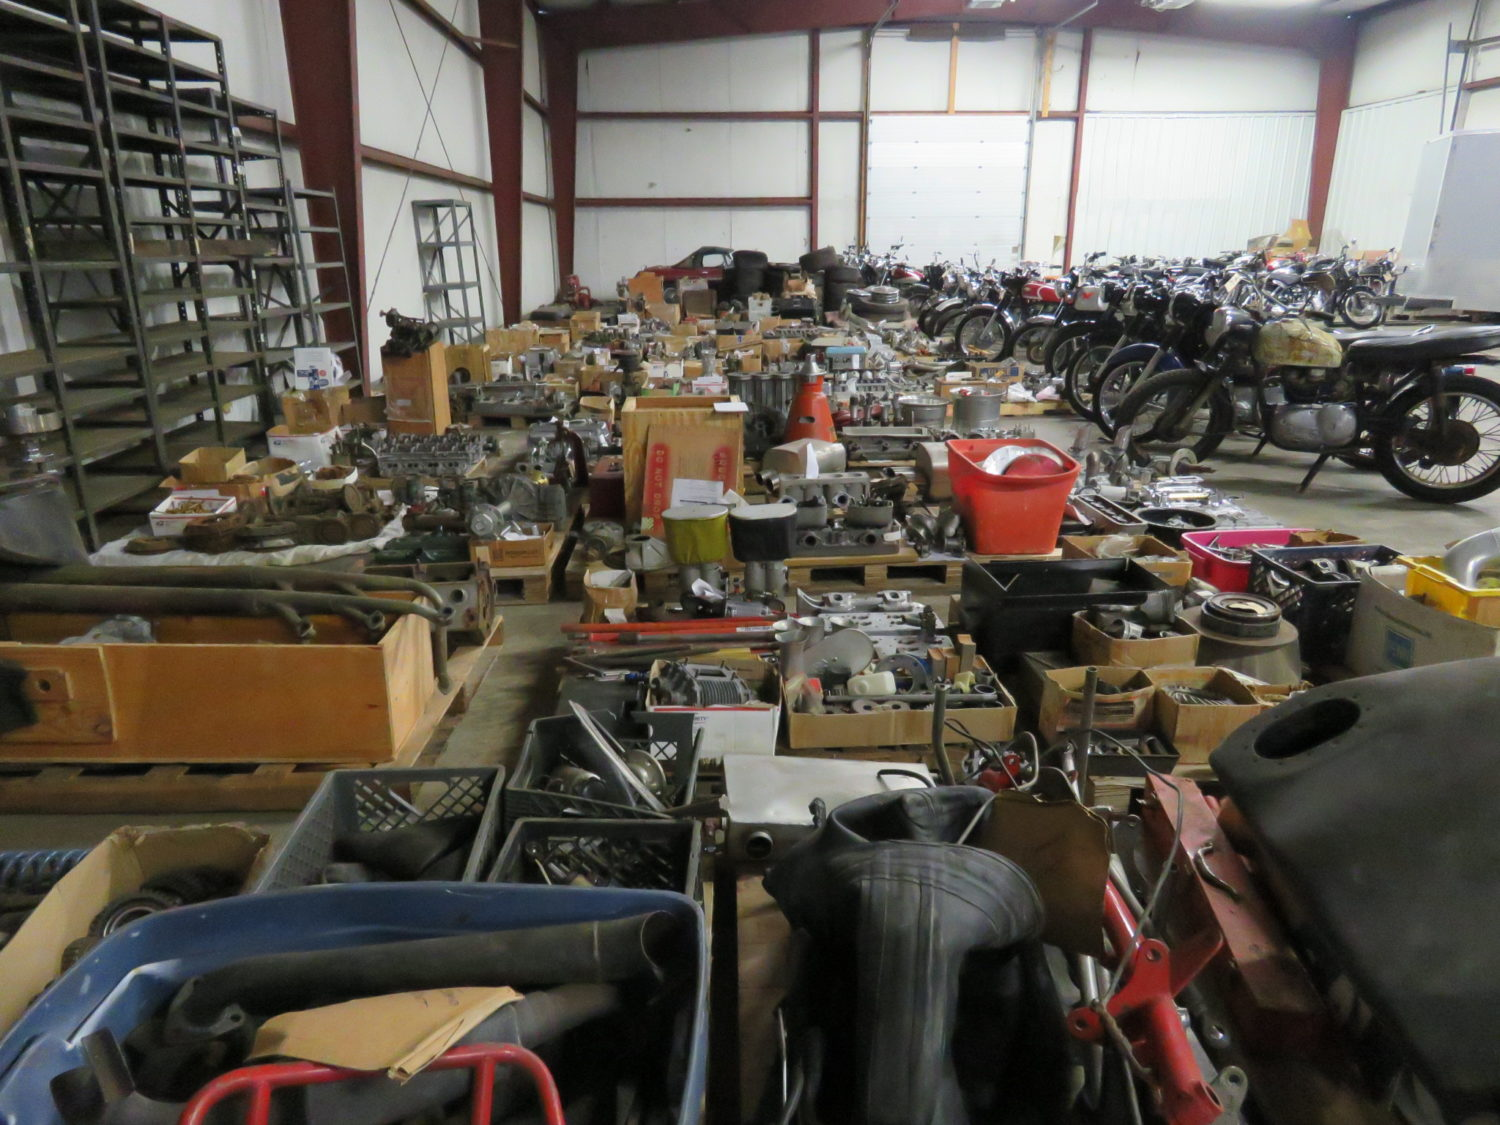 Amazing Vintage Motorcycles, Race Cars, Collector Cars & Parts! The JAB Collection - image 7